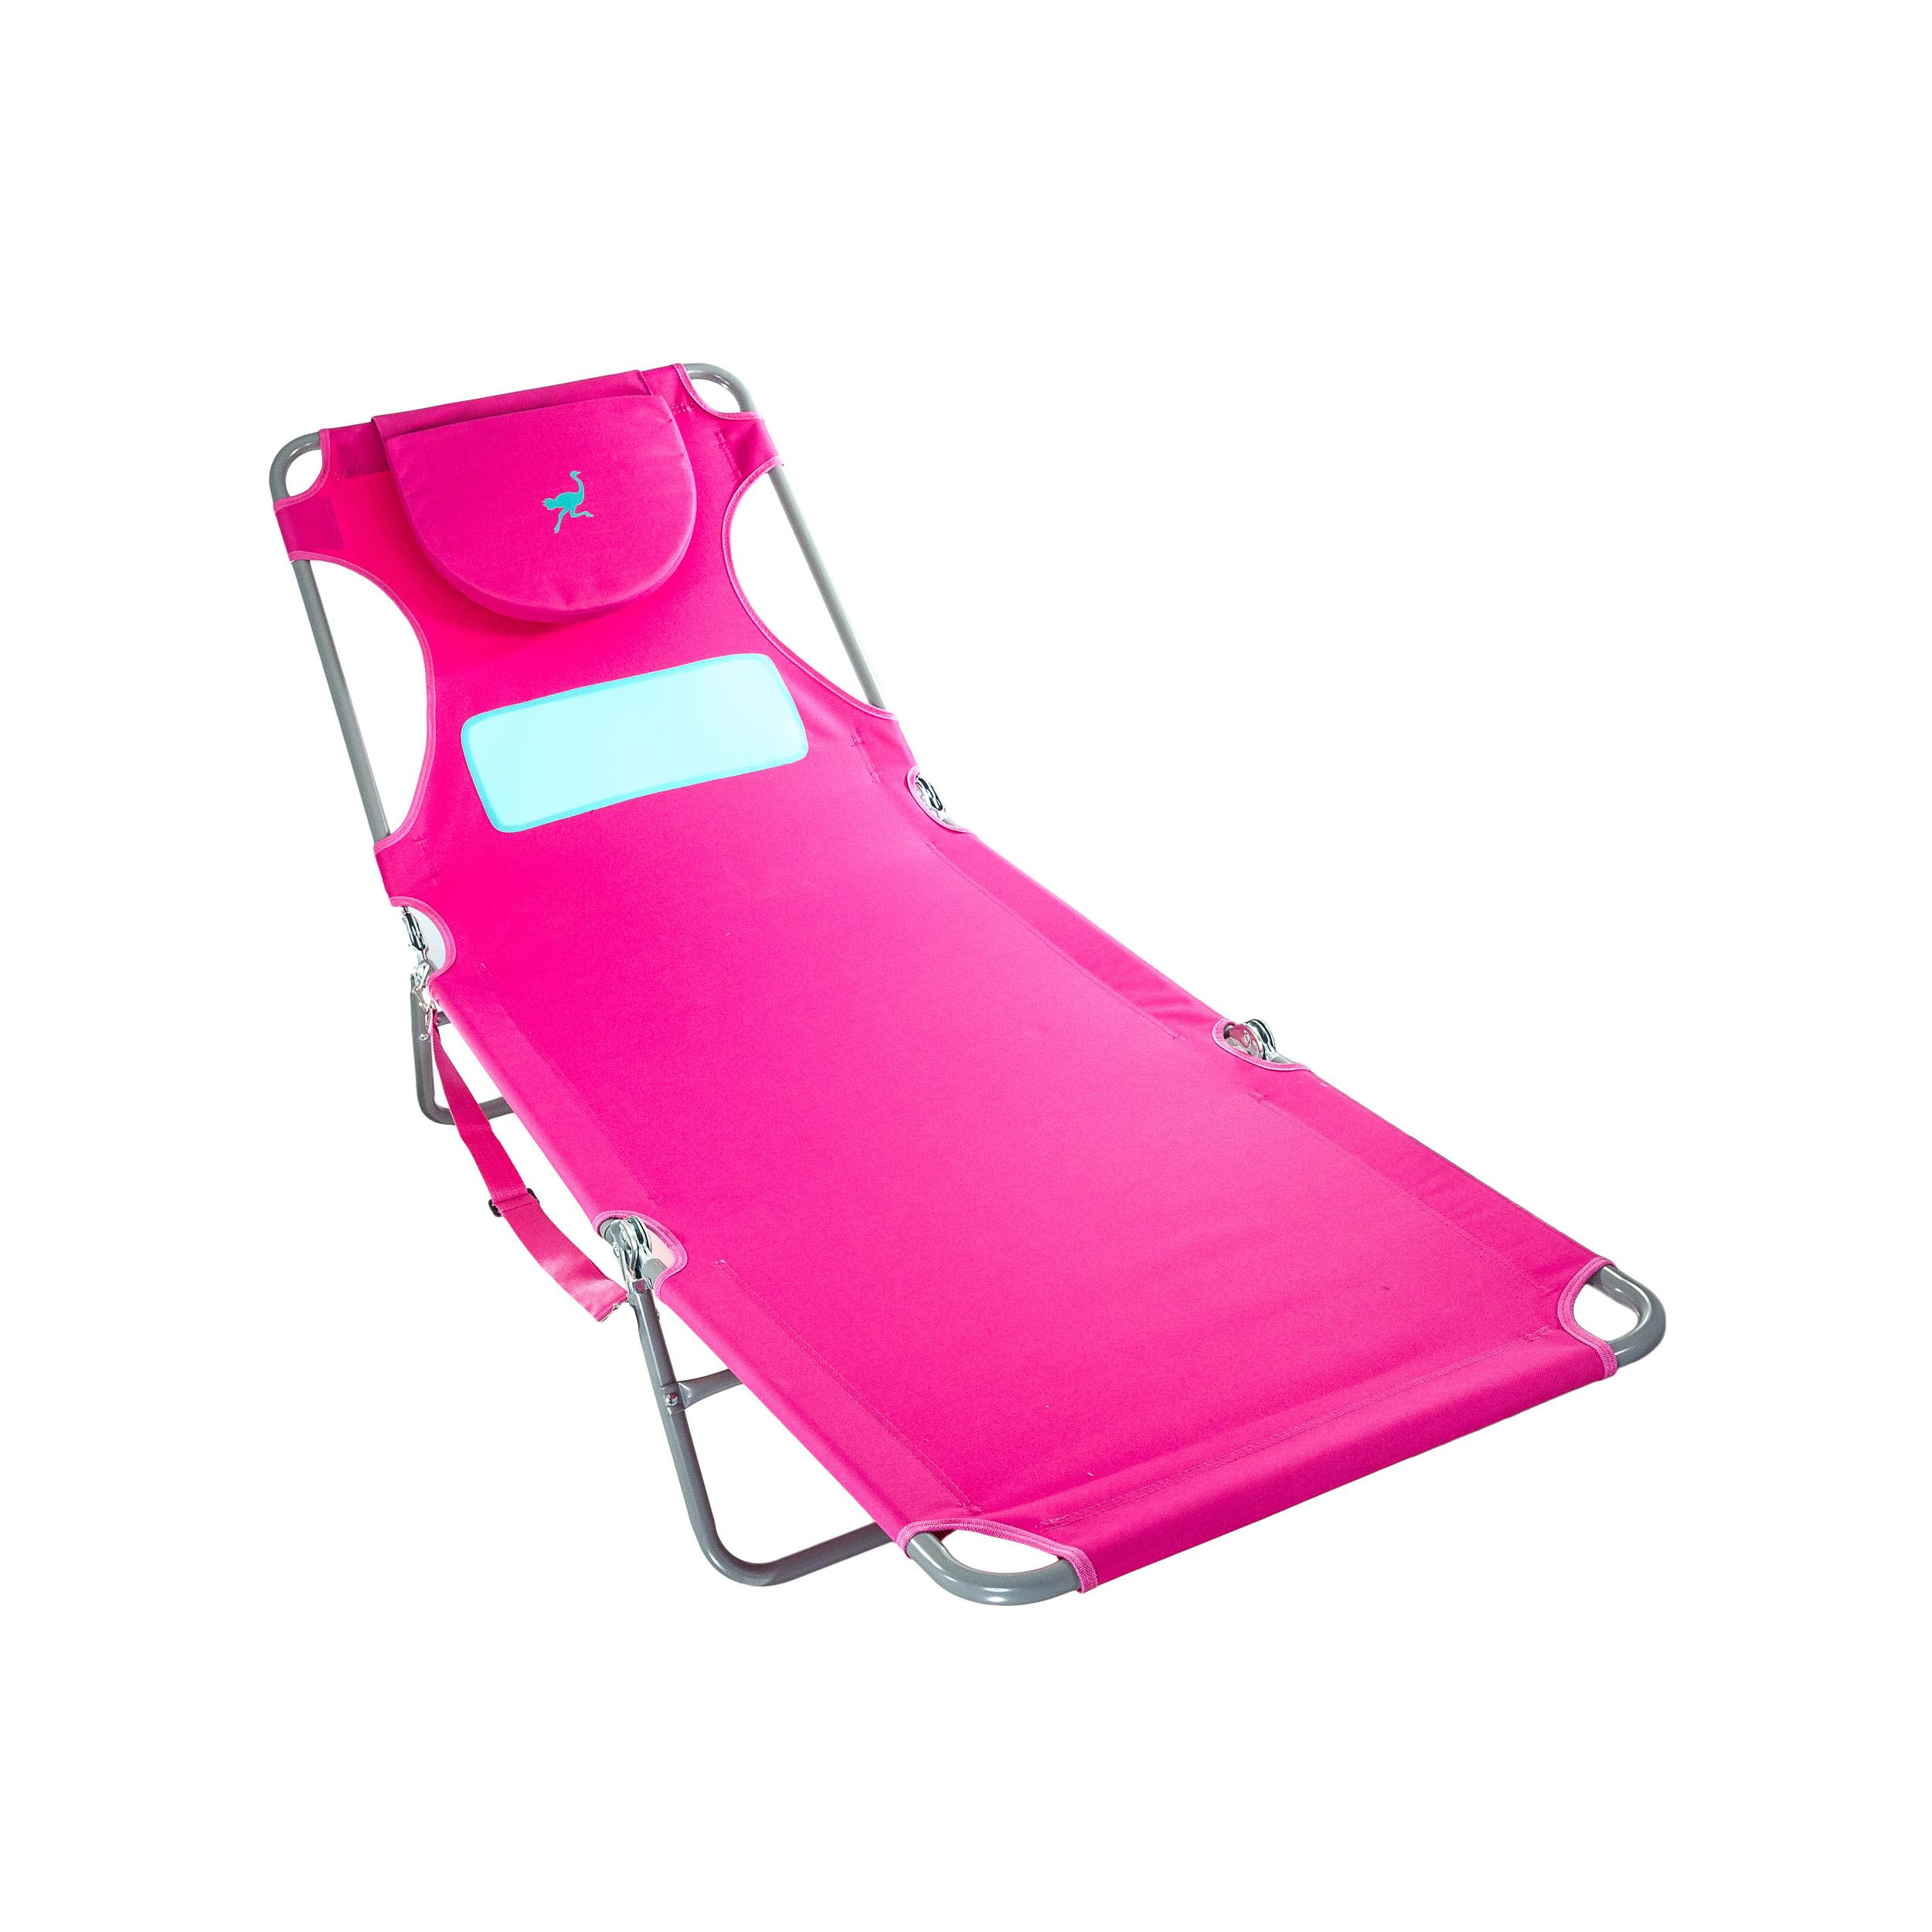 Ostrich Ladies Comfort Lounger Beach chairs, Lounge